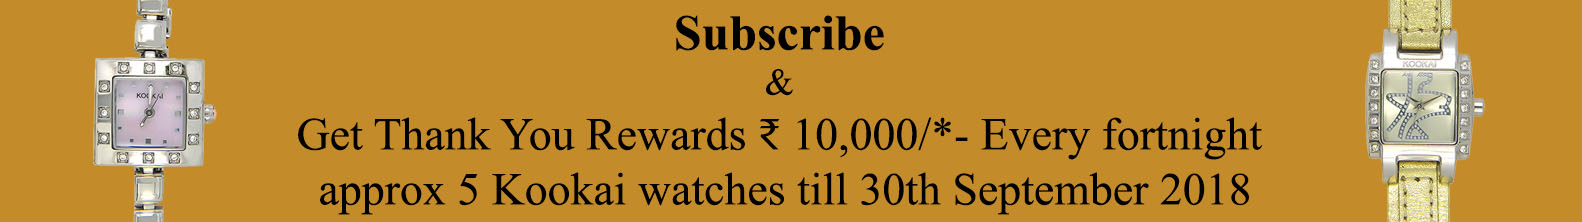 subscribe & win